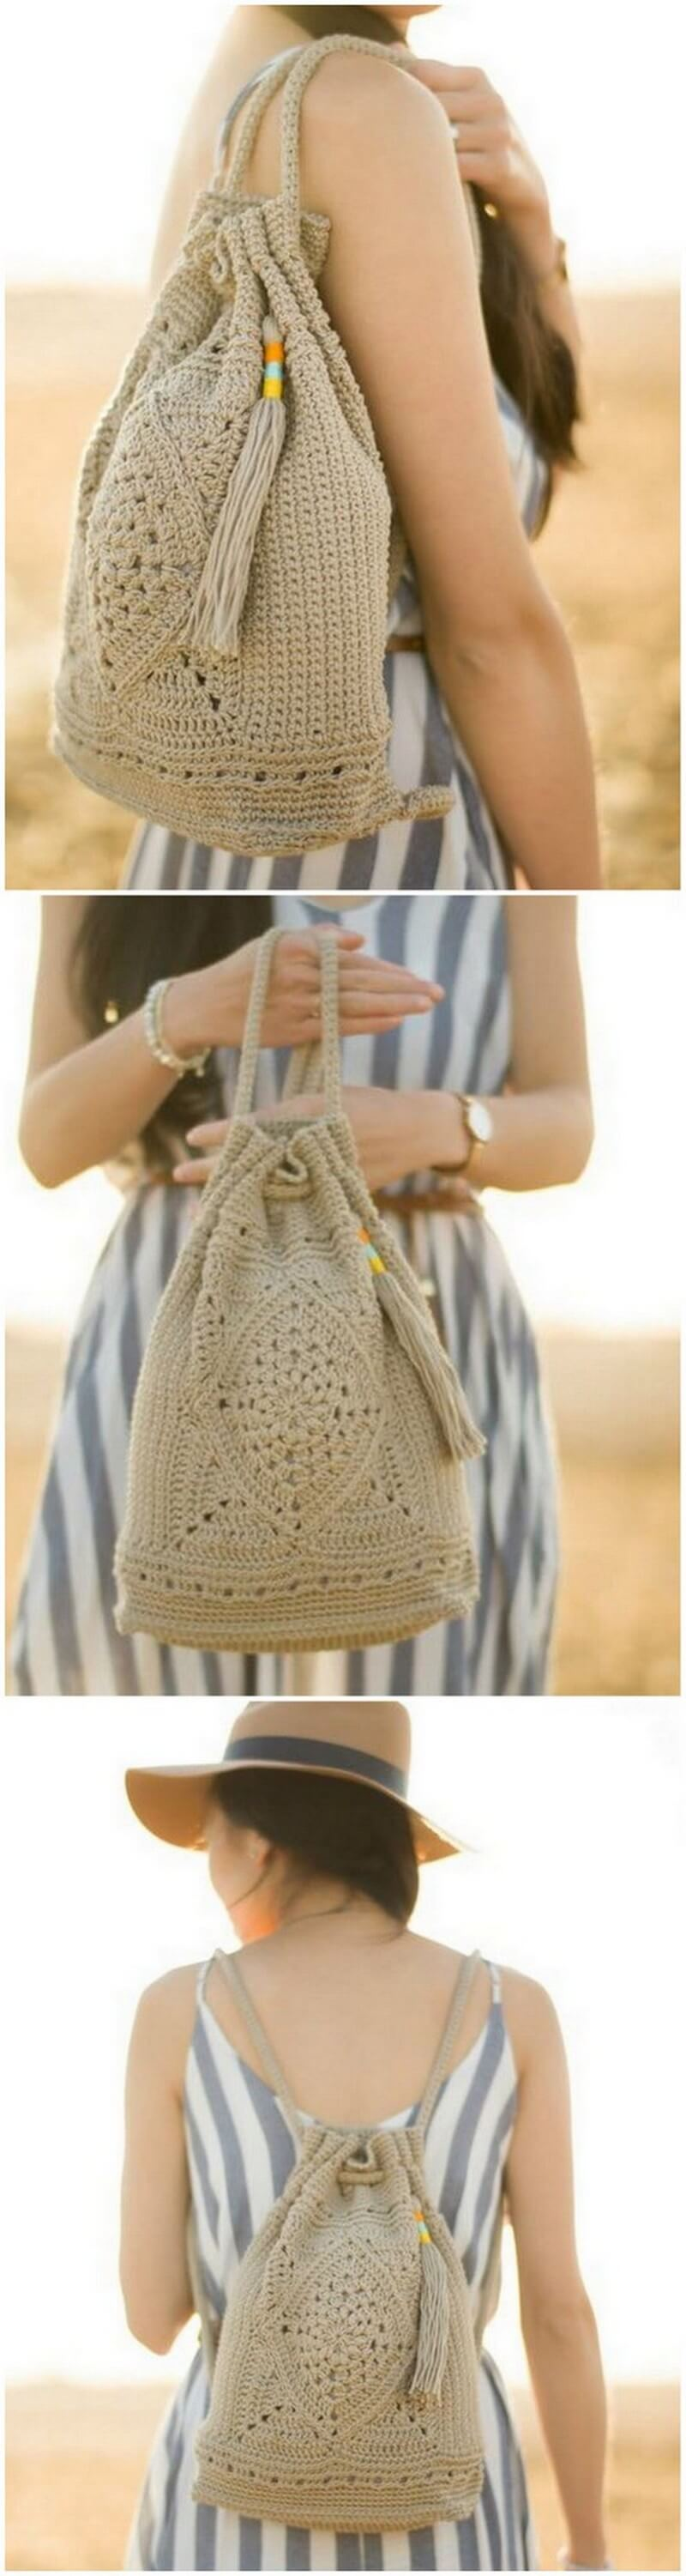 Crochet Bag Pattern (51)